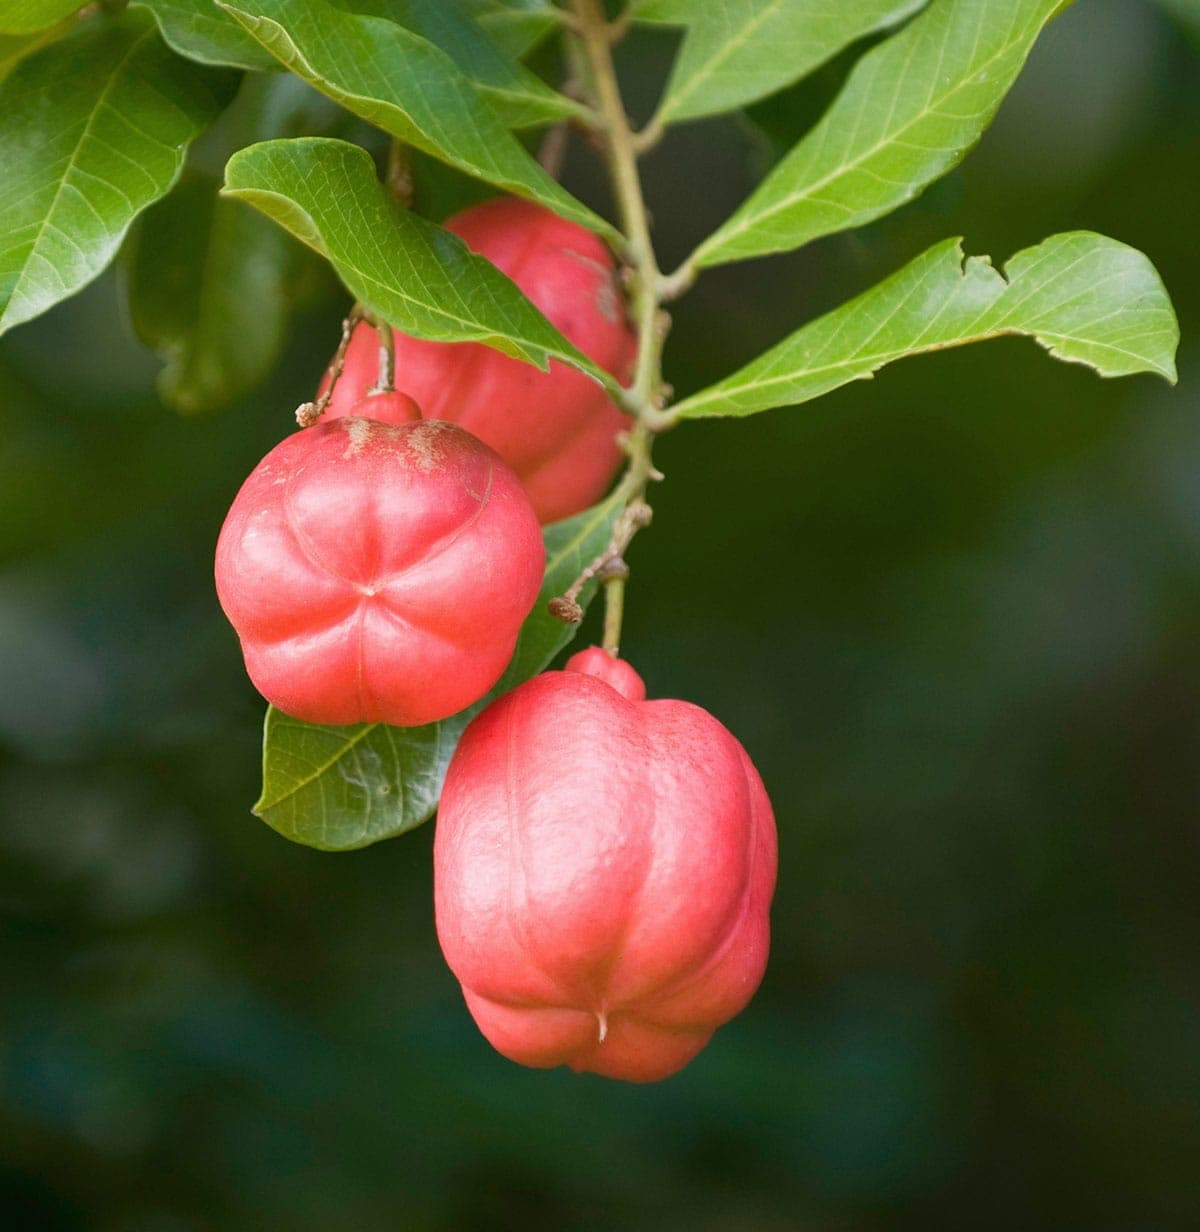 ackee fruits on a tree